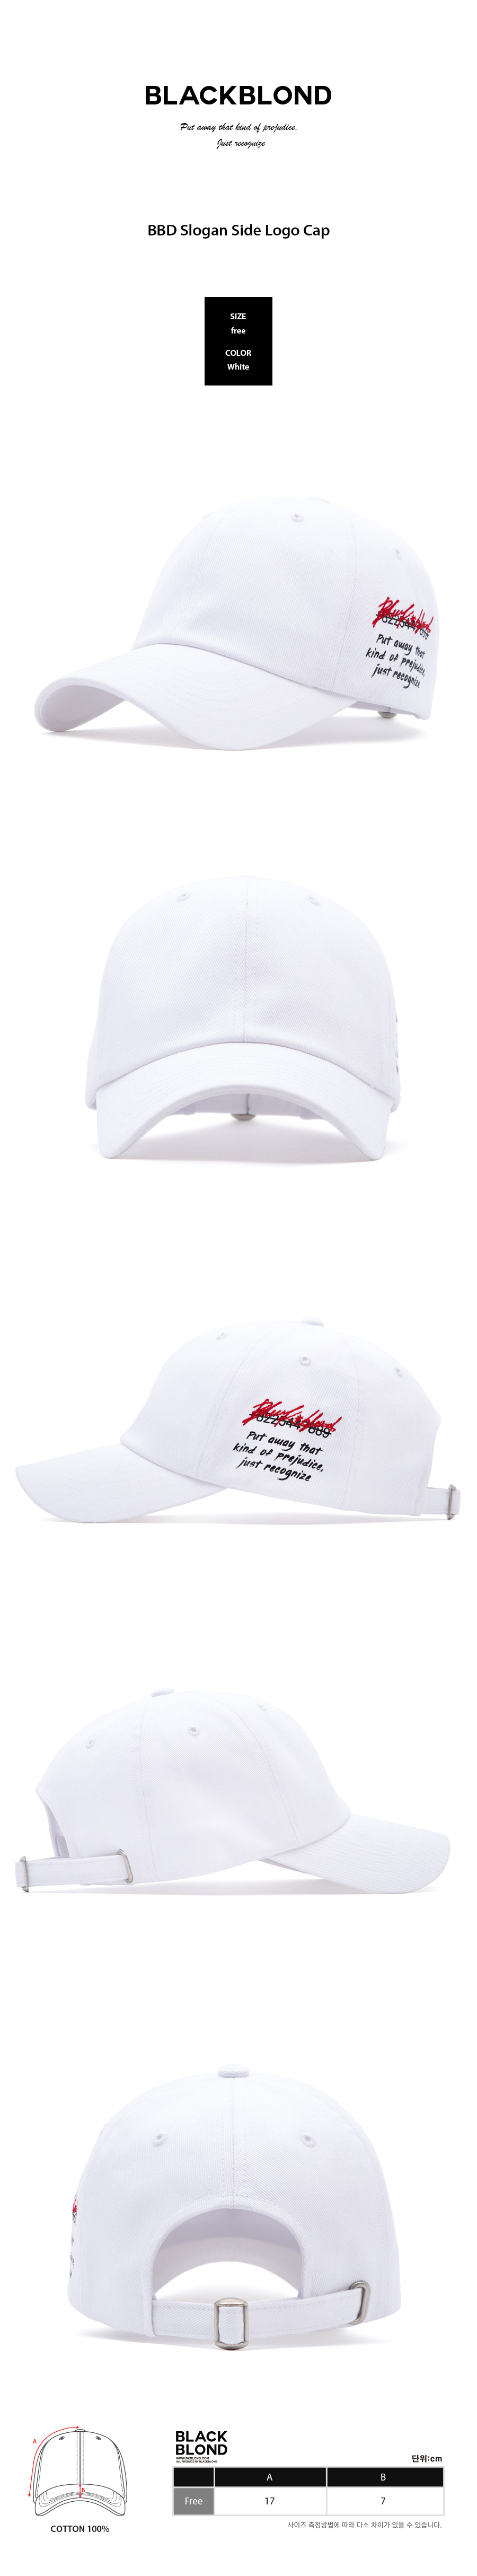 BBD-Slogan-Side-Logo-Cap-%28White%29.jpg